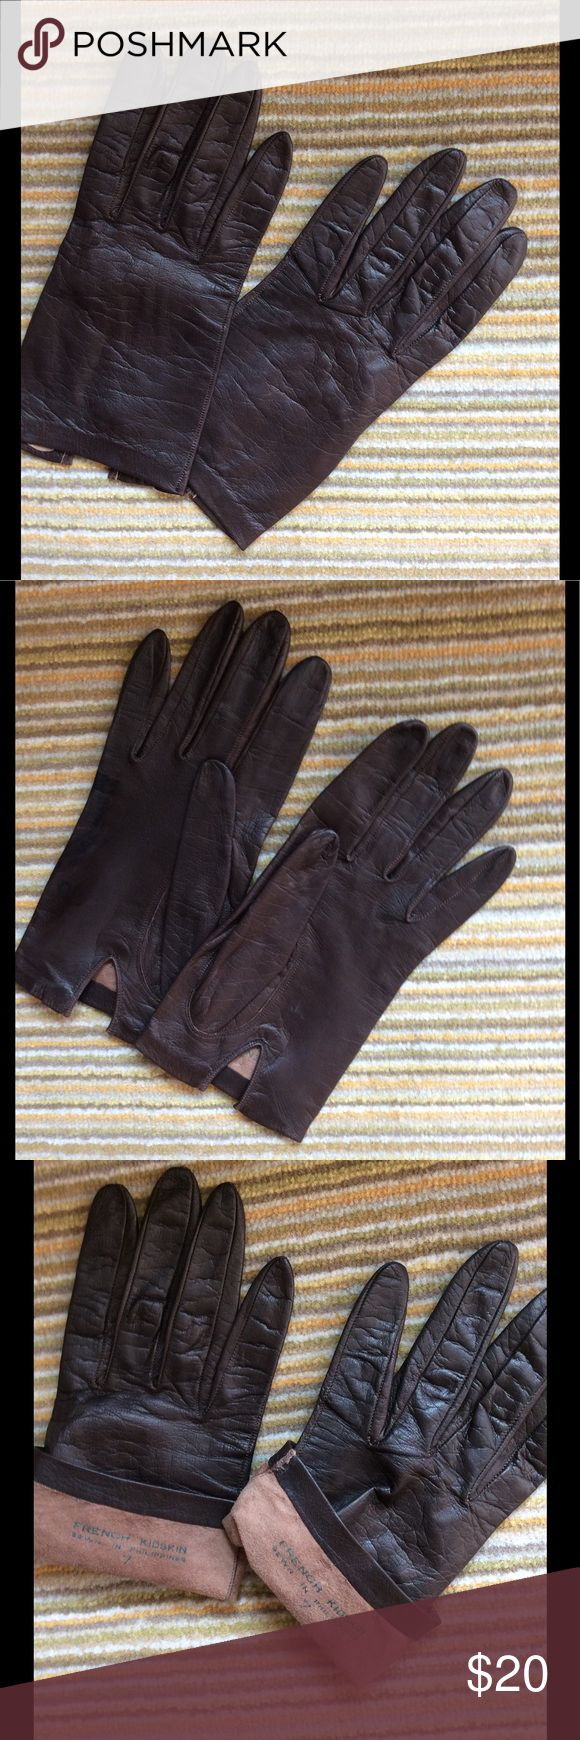 Mens leather kid gloves - Vintage Brown Kid Leather Driving Gloves Sz 7 Evc